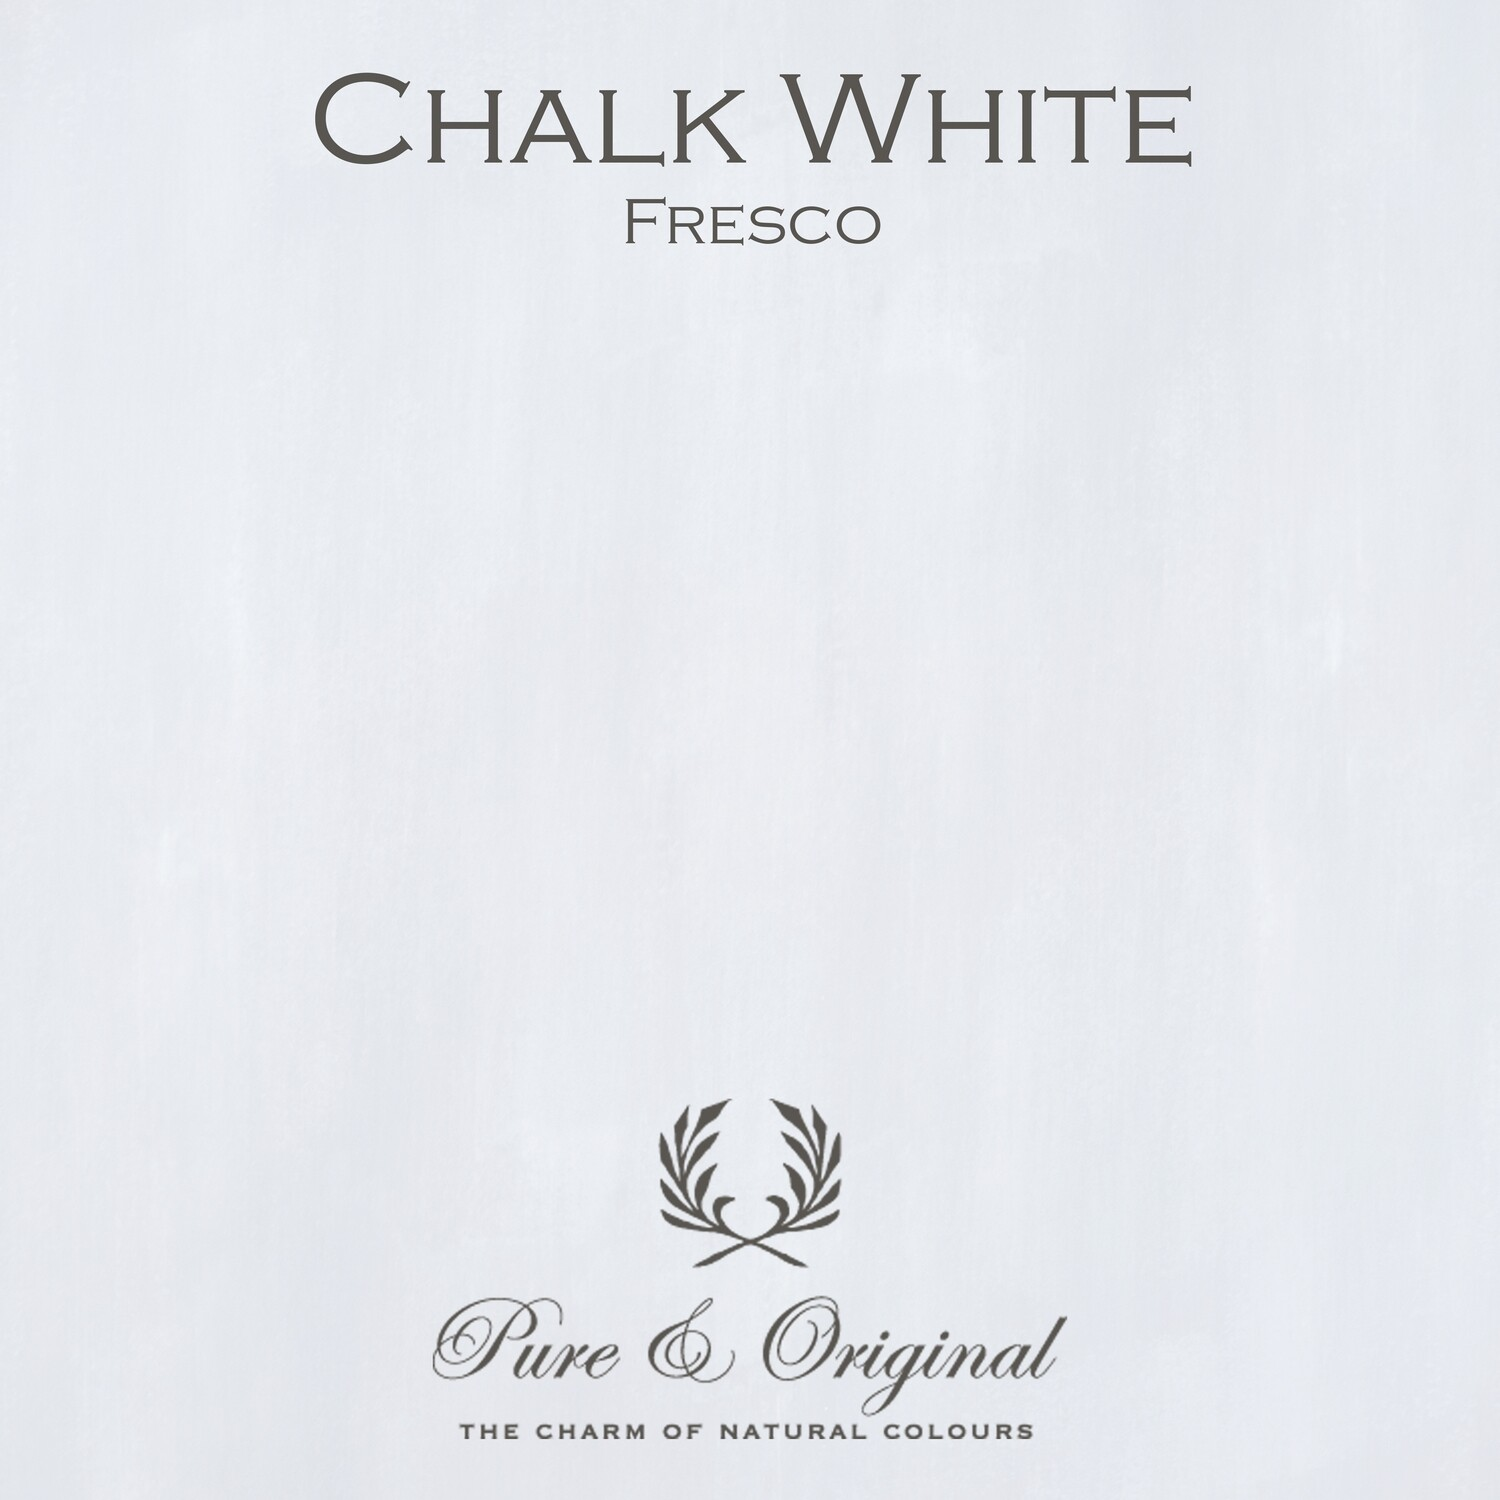 Chalk White Fresco